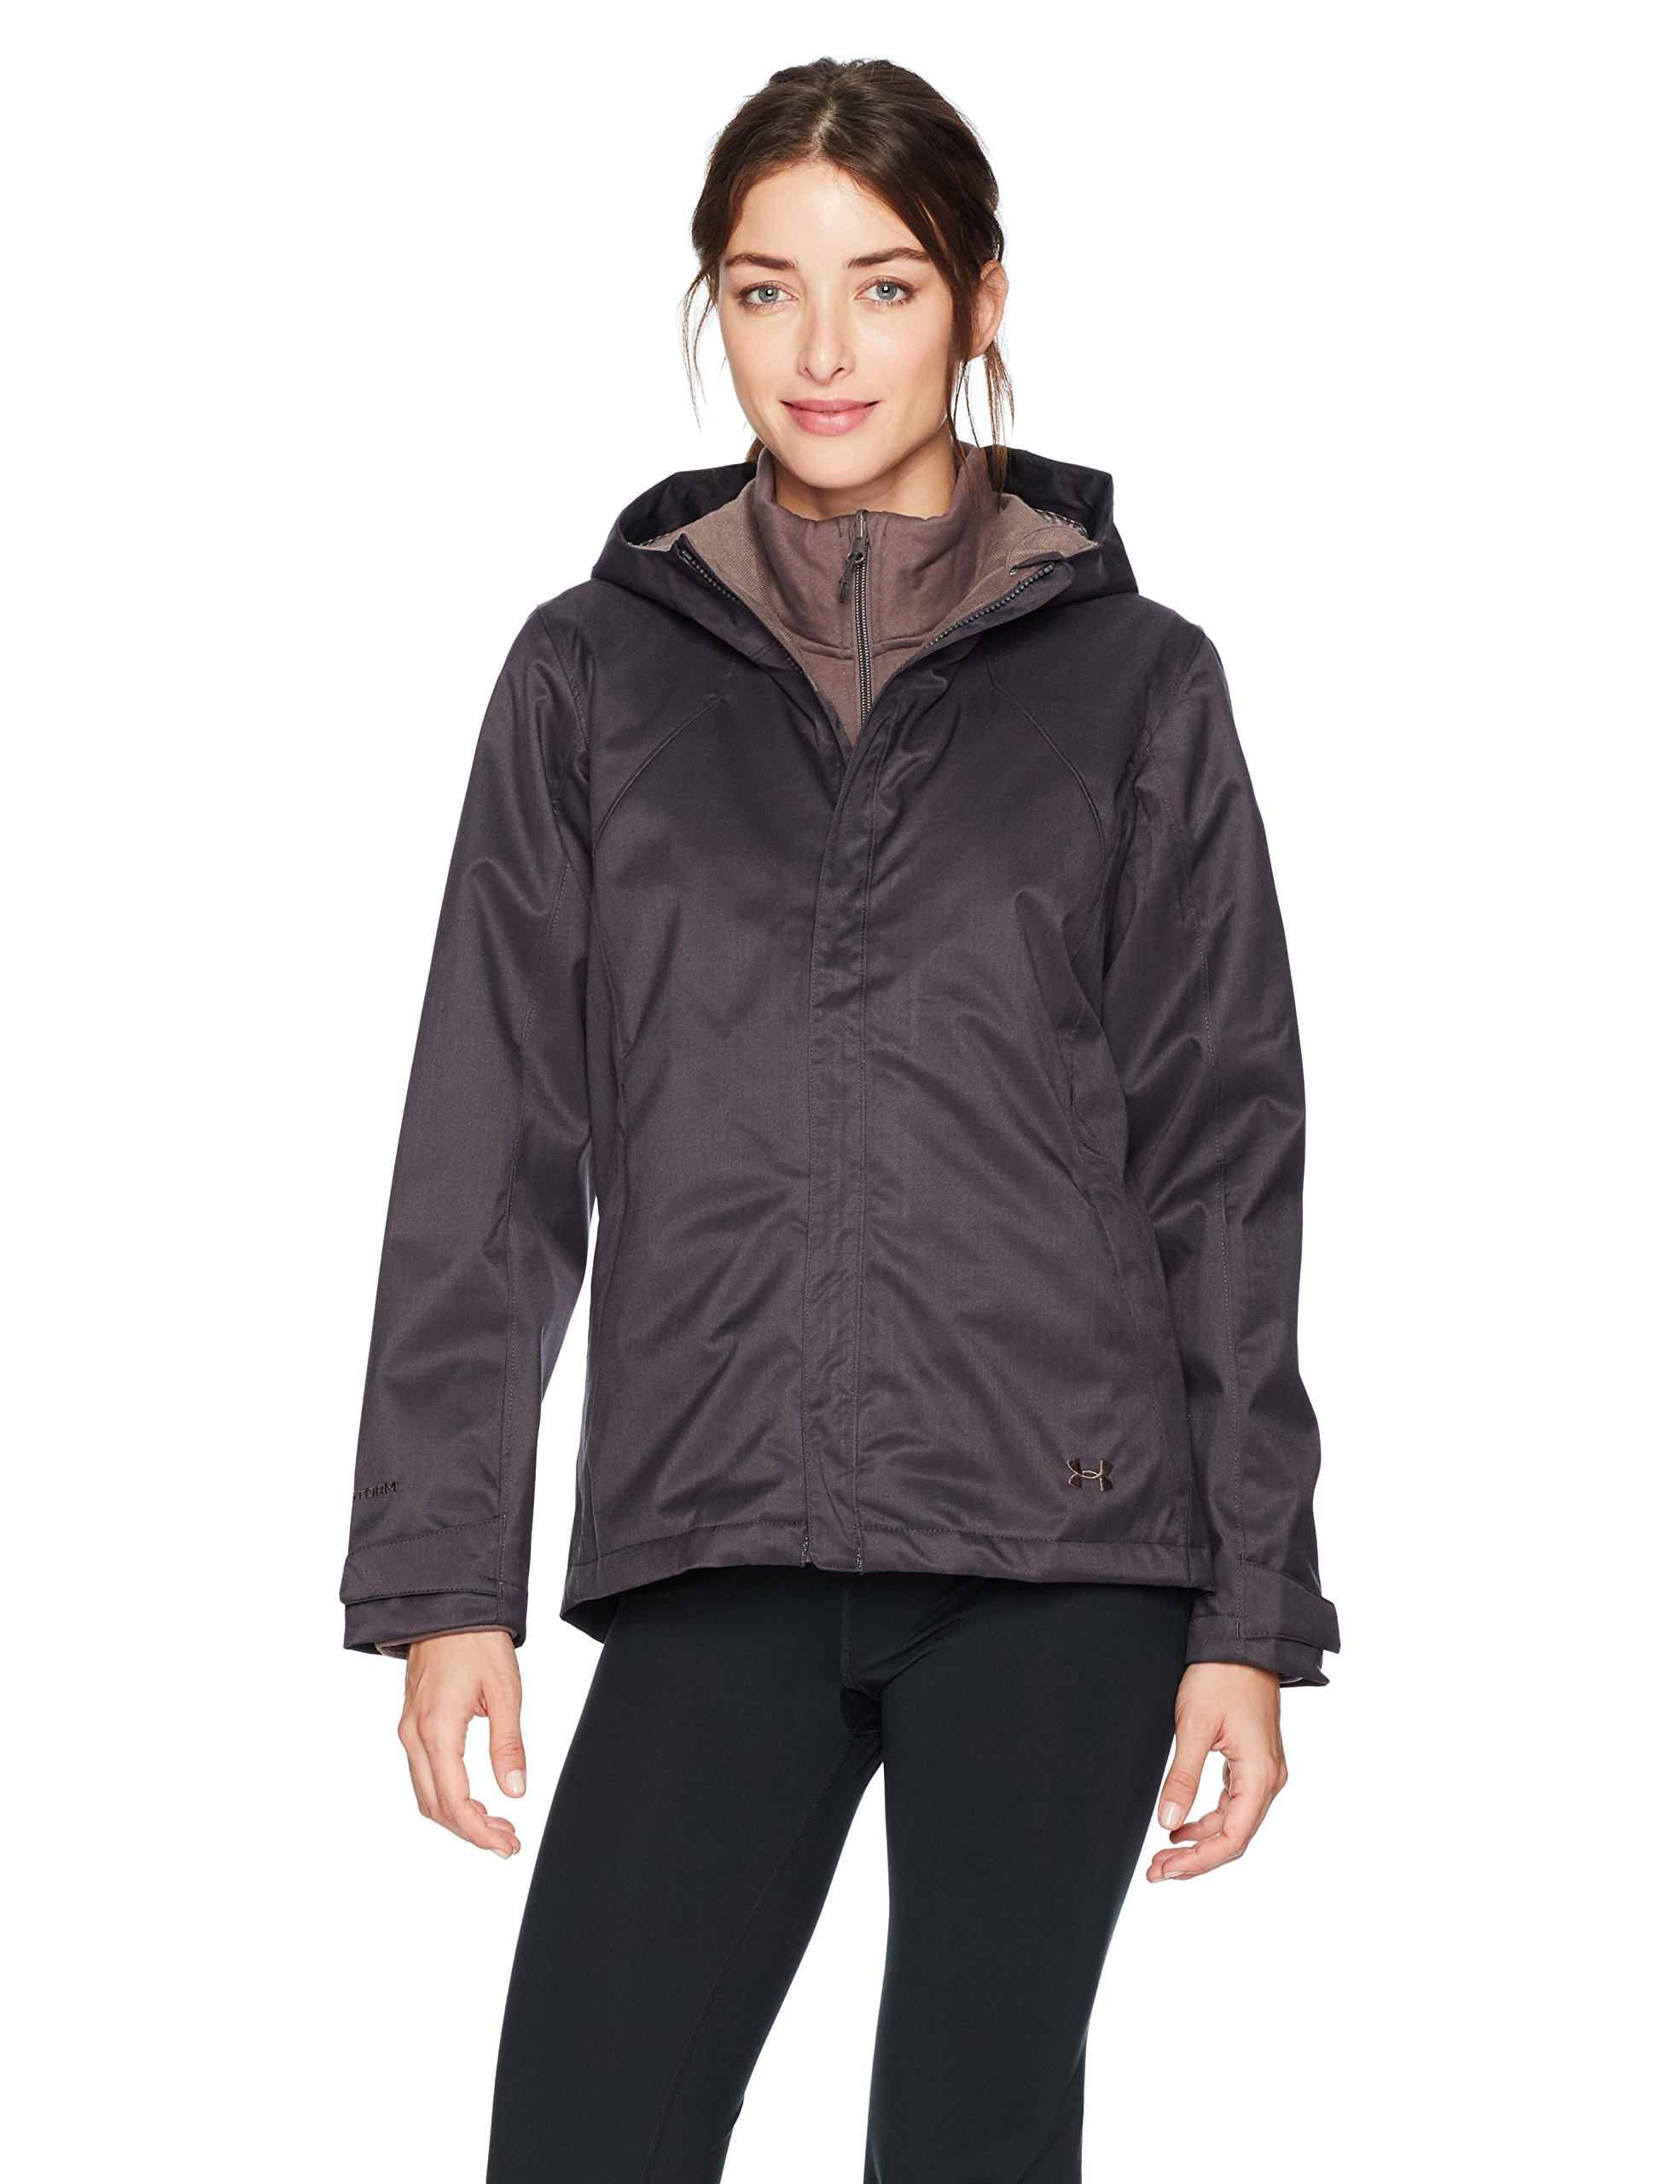 Under Armour Outerwear Under Armour Women's Sienna 3-In-1, Truffle Gray/Mocha, X-Large by Under Armour